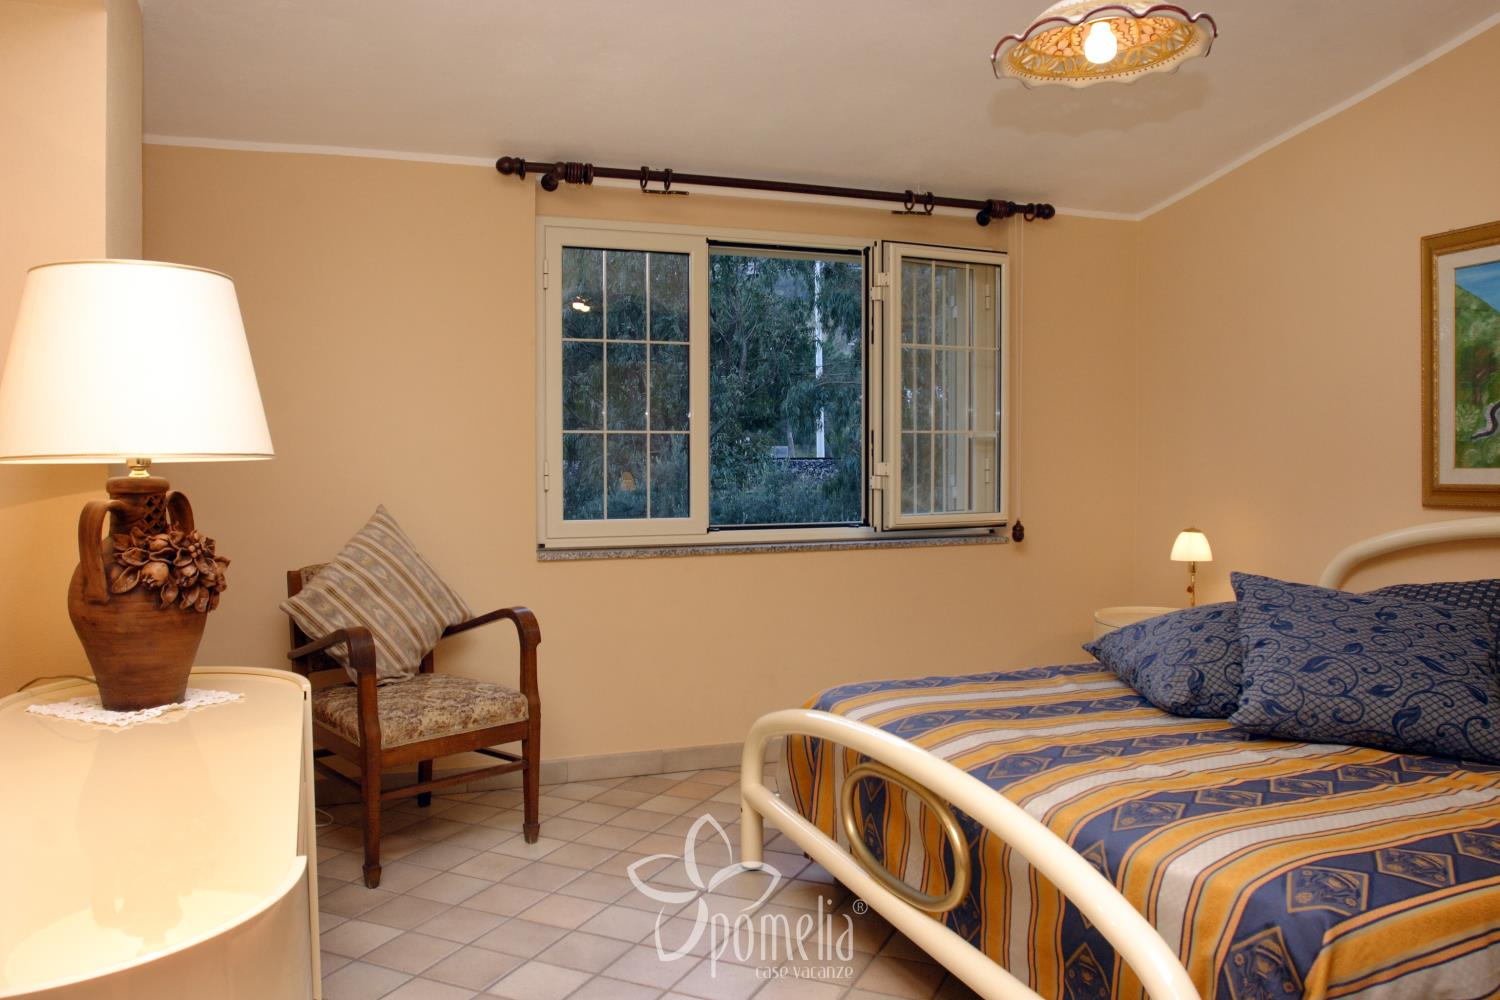 Marena, villa at 50 mt. from the beach in Gioisa Marea (Messina) - Double room